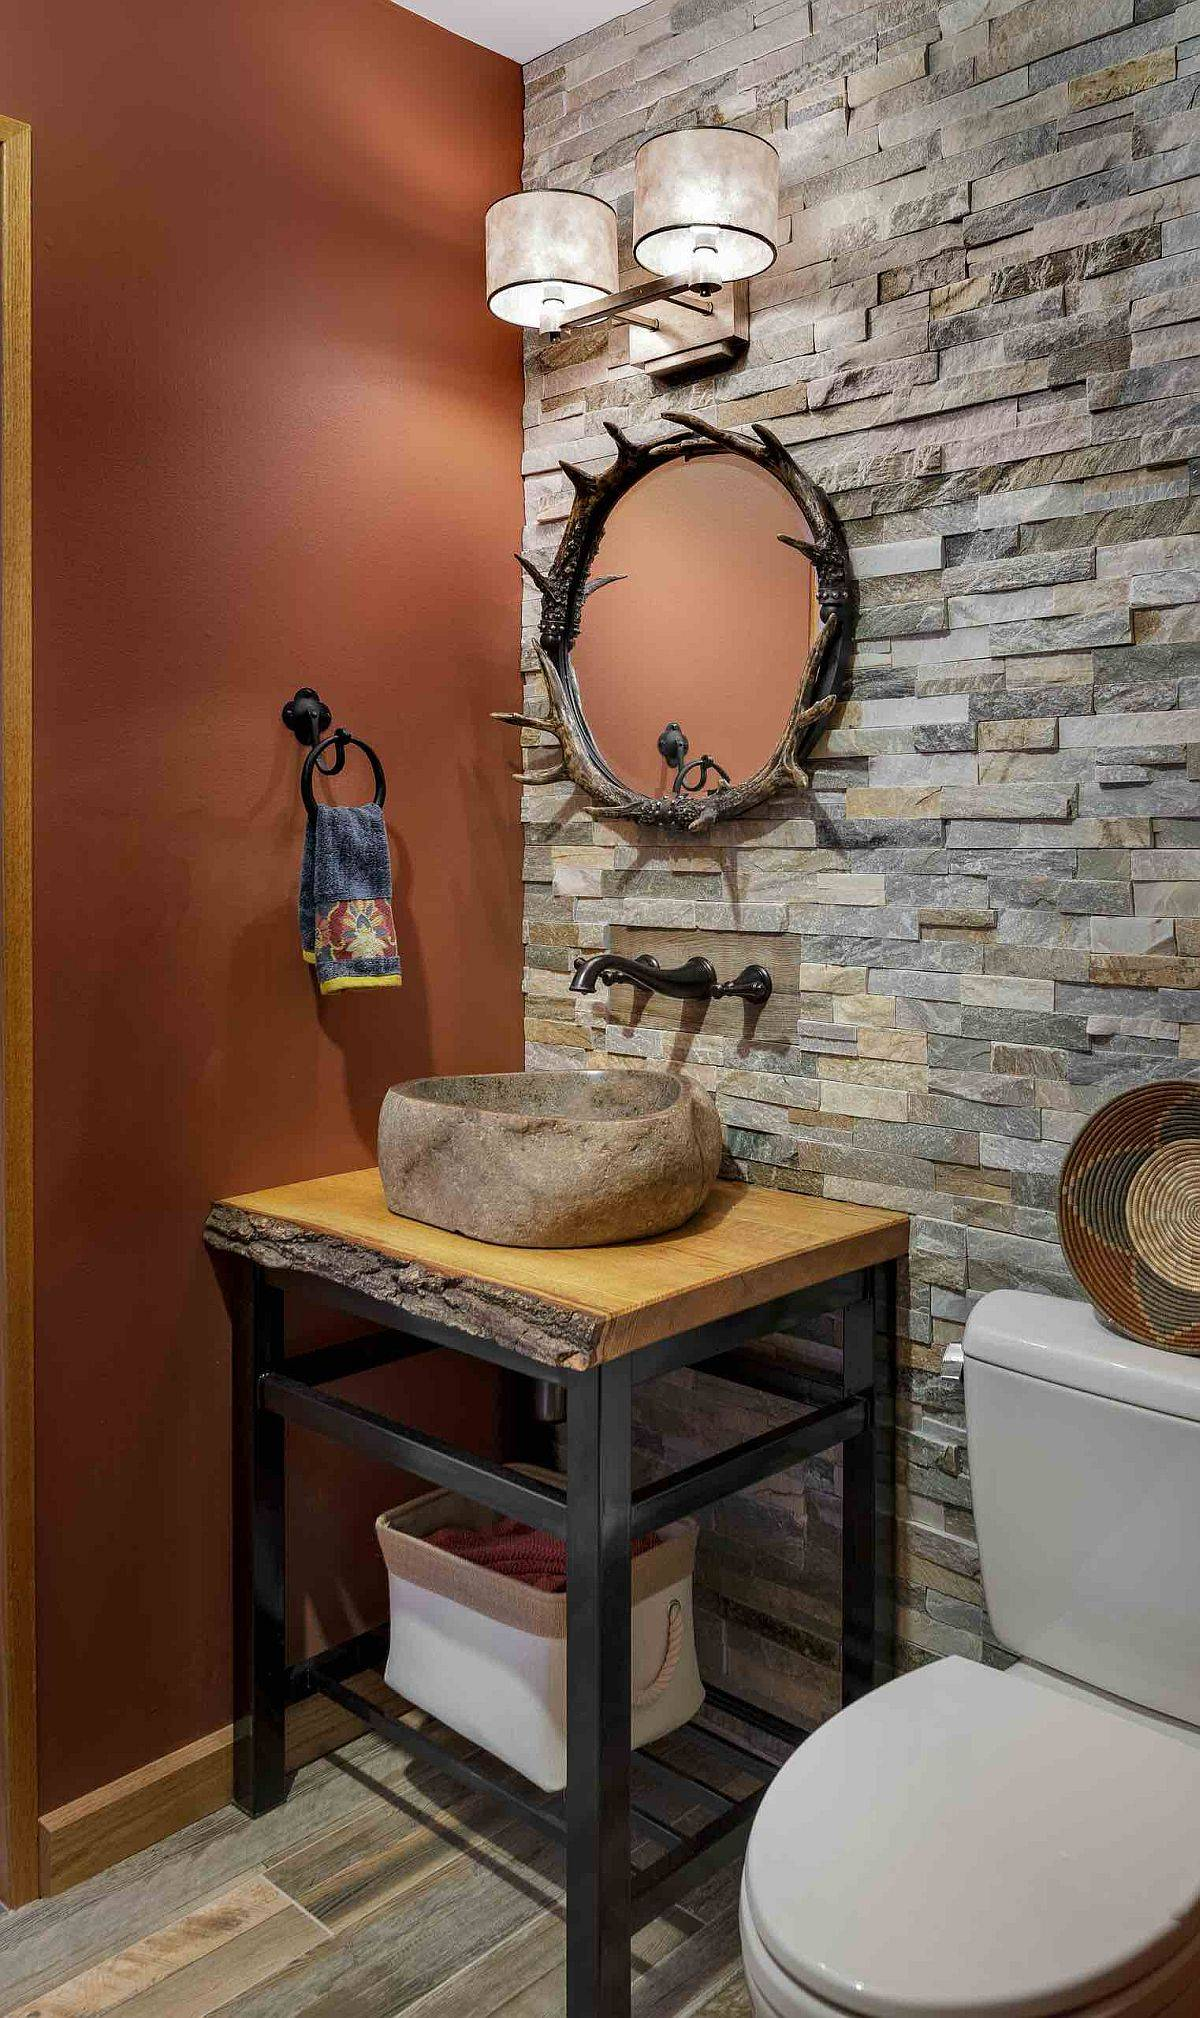 Frame-around-the-mirror-ends-up-being-the-biggest-showstopper-in-this-small-rustic-powder-room-28717